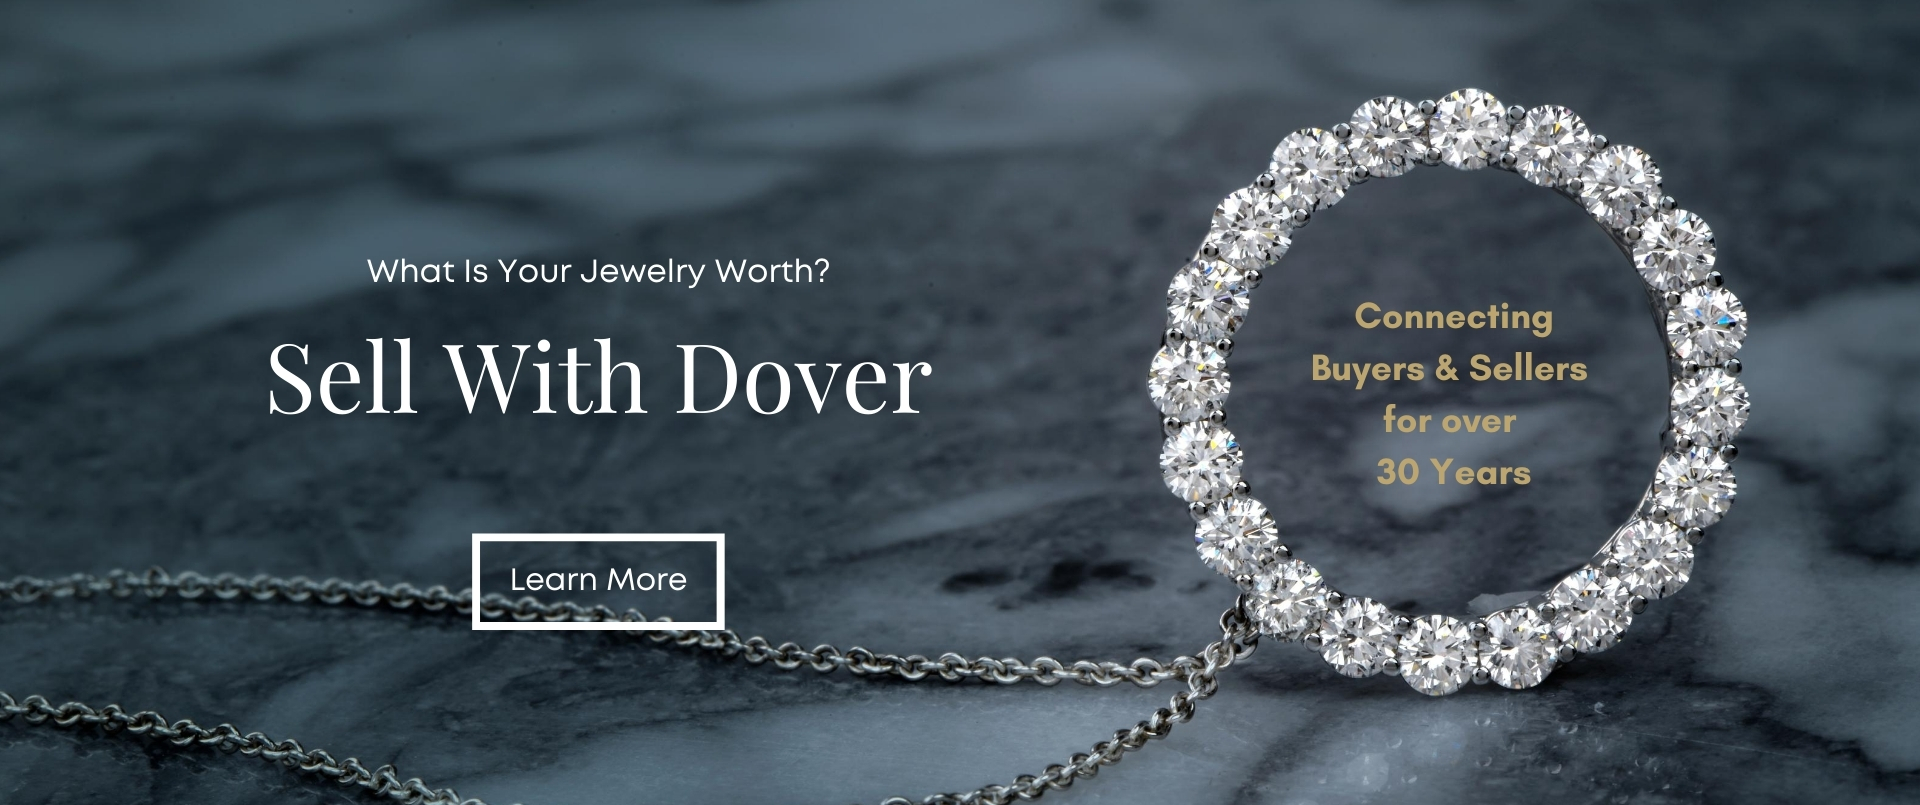 sell with dover